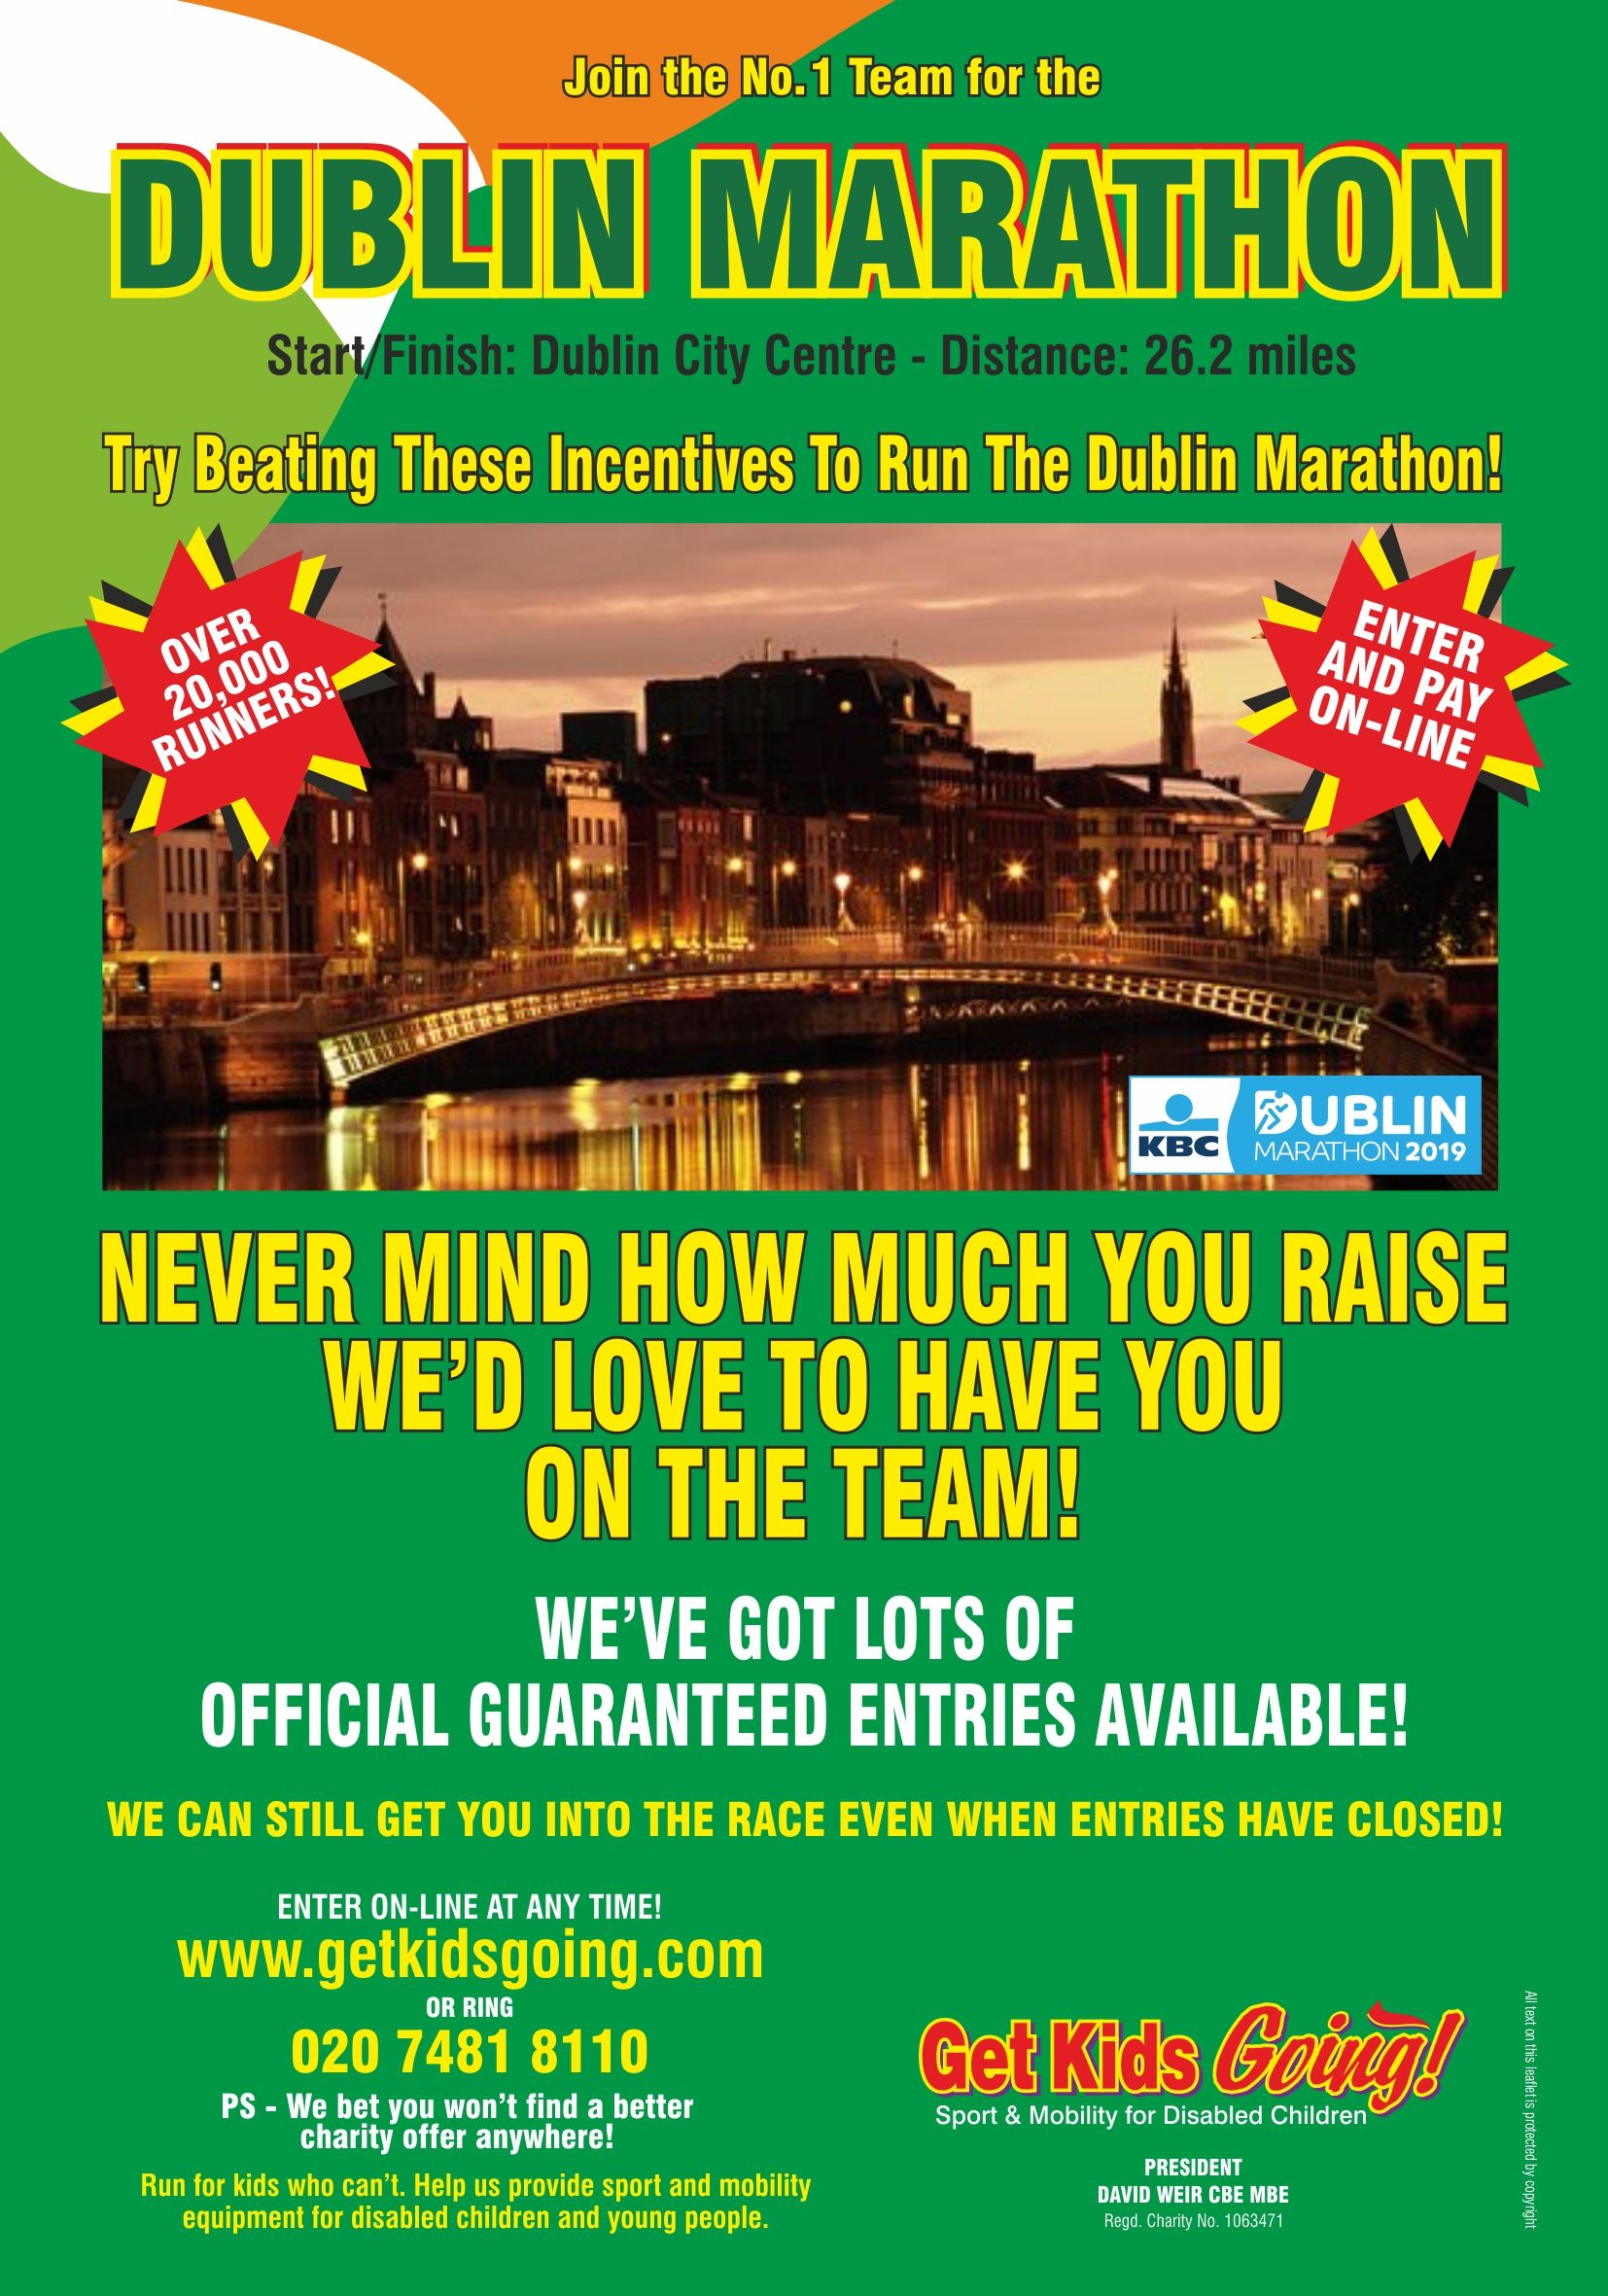 We have many guaranteed entry places available for the Dublin Marathon  2017 just waiting to be filled!  Get Kids Going! is a unique, national charity that gives disabled children and young people the wonderful opportunity of participating in sport. Help us to Turn their Dreams Into Reality.